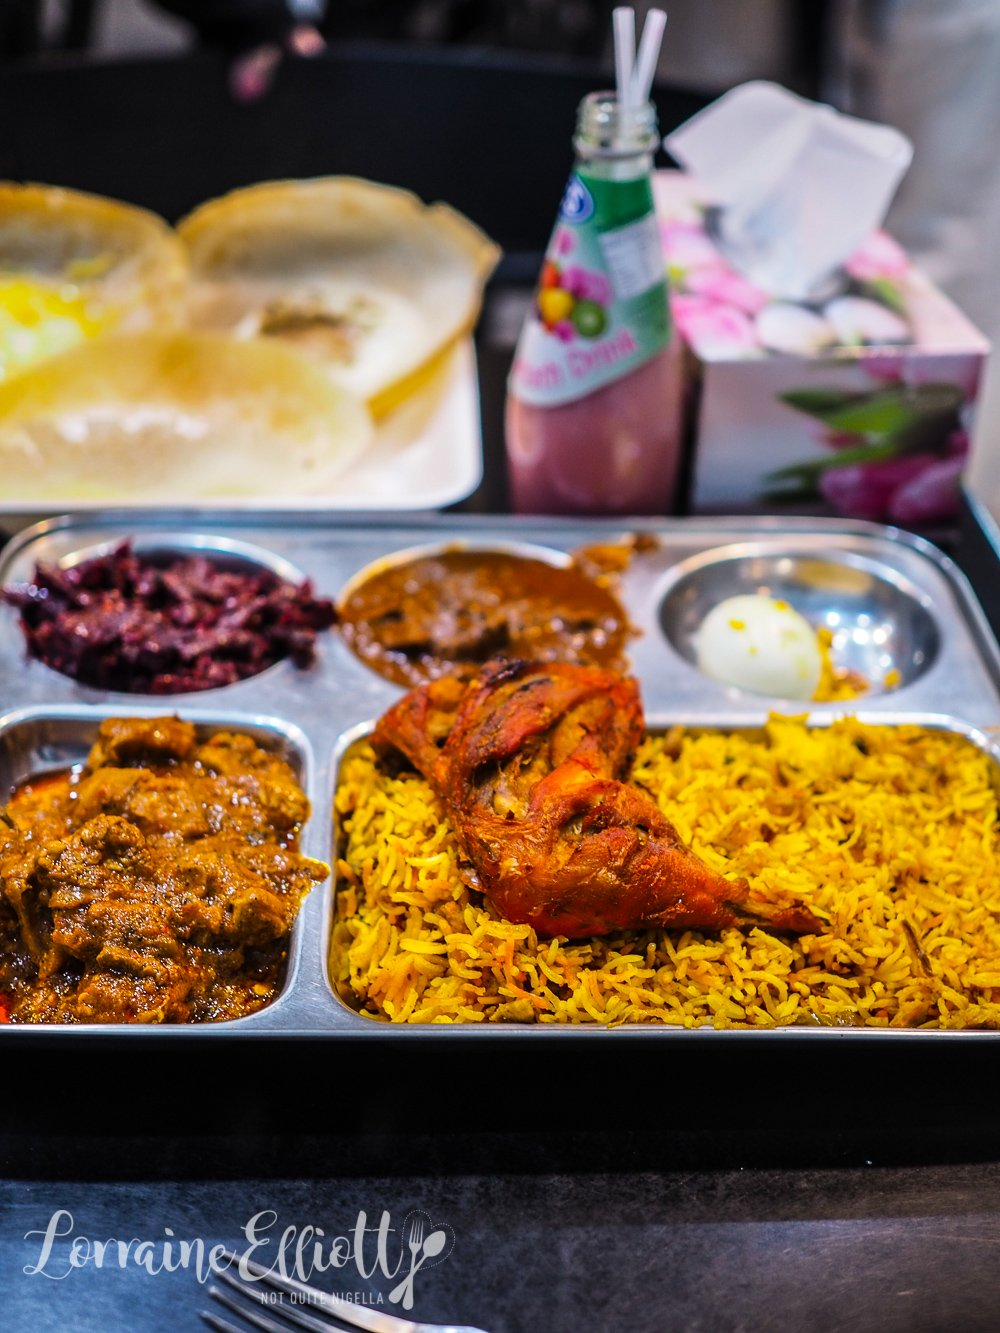 Sri Lankan Food Sydney Toongabbie Pendle Hill